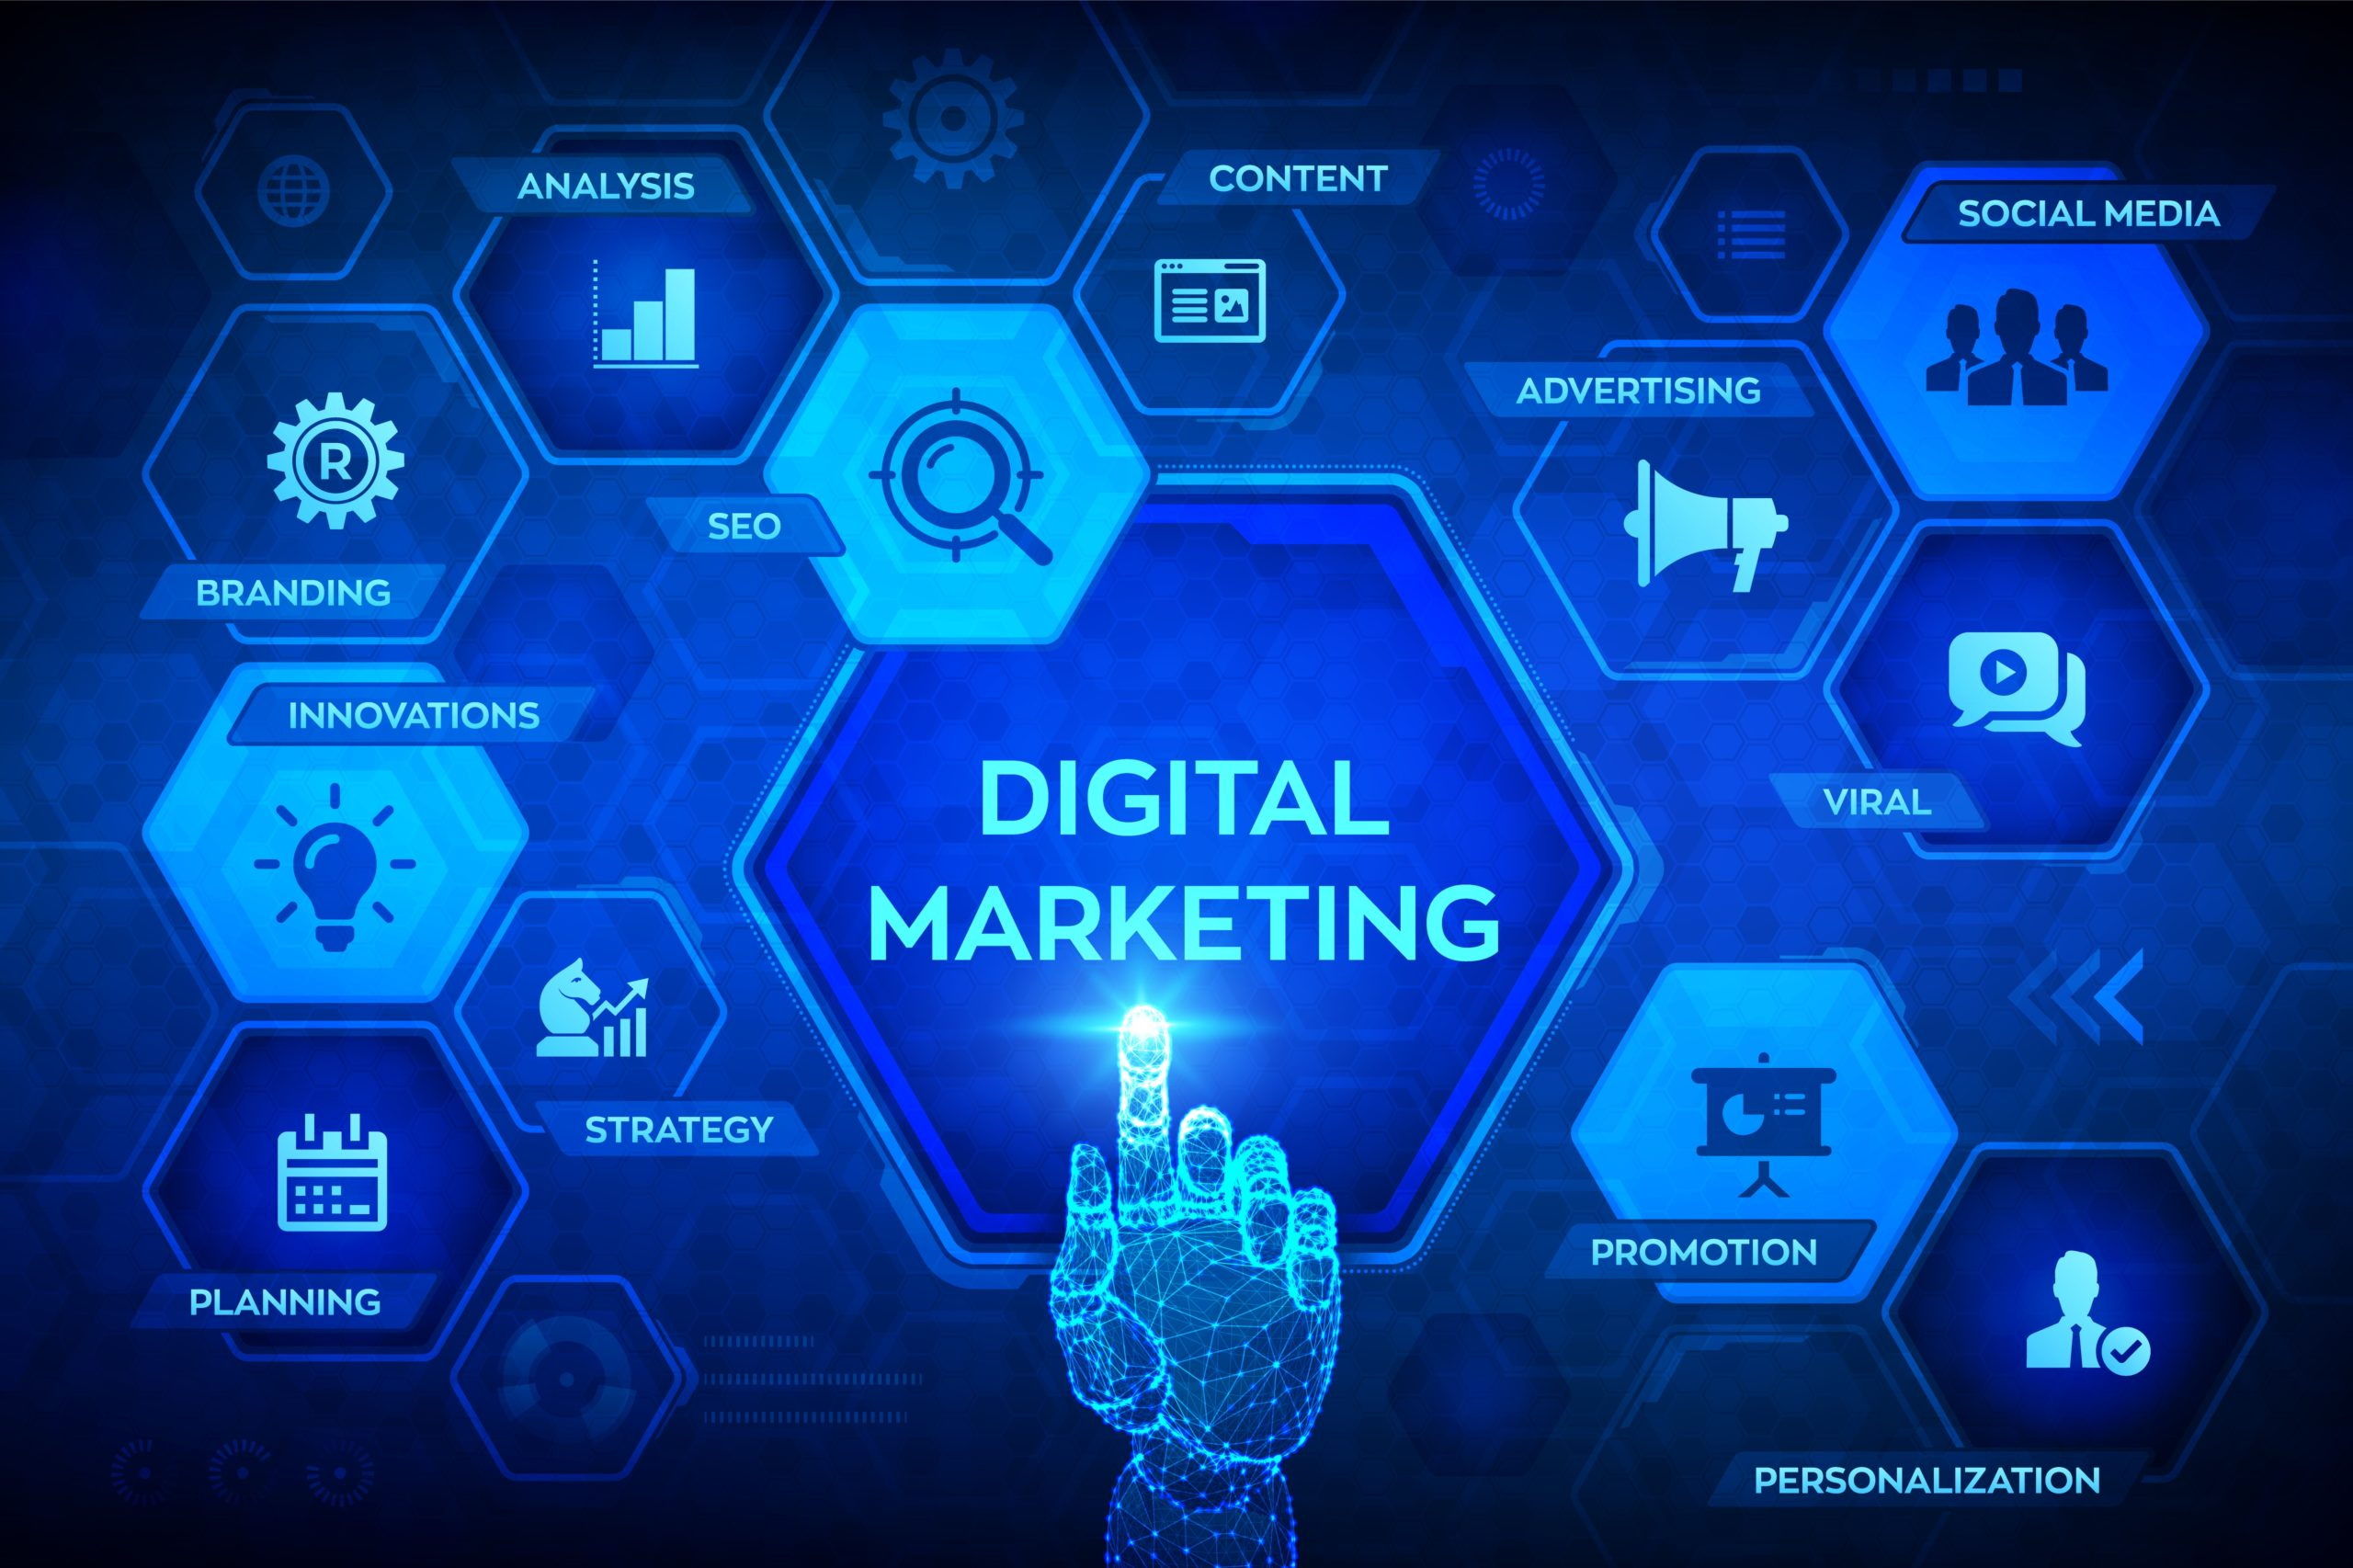 10 Digital Marketing Strategies You Need to Have in 2021